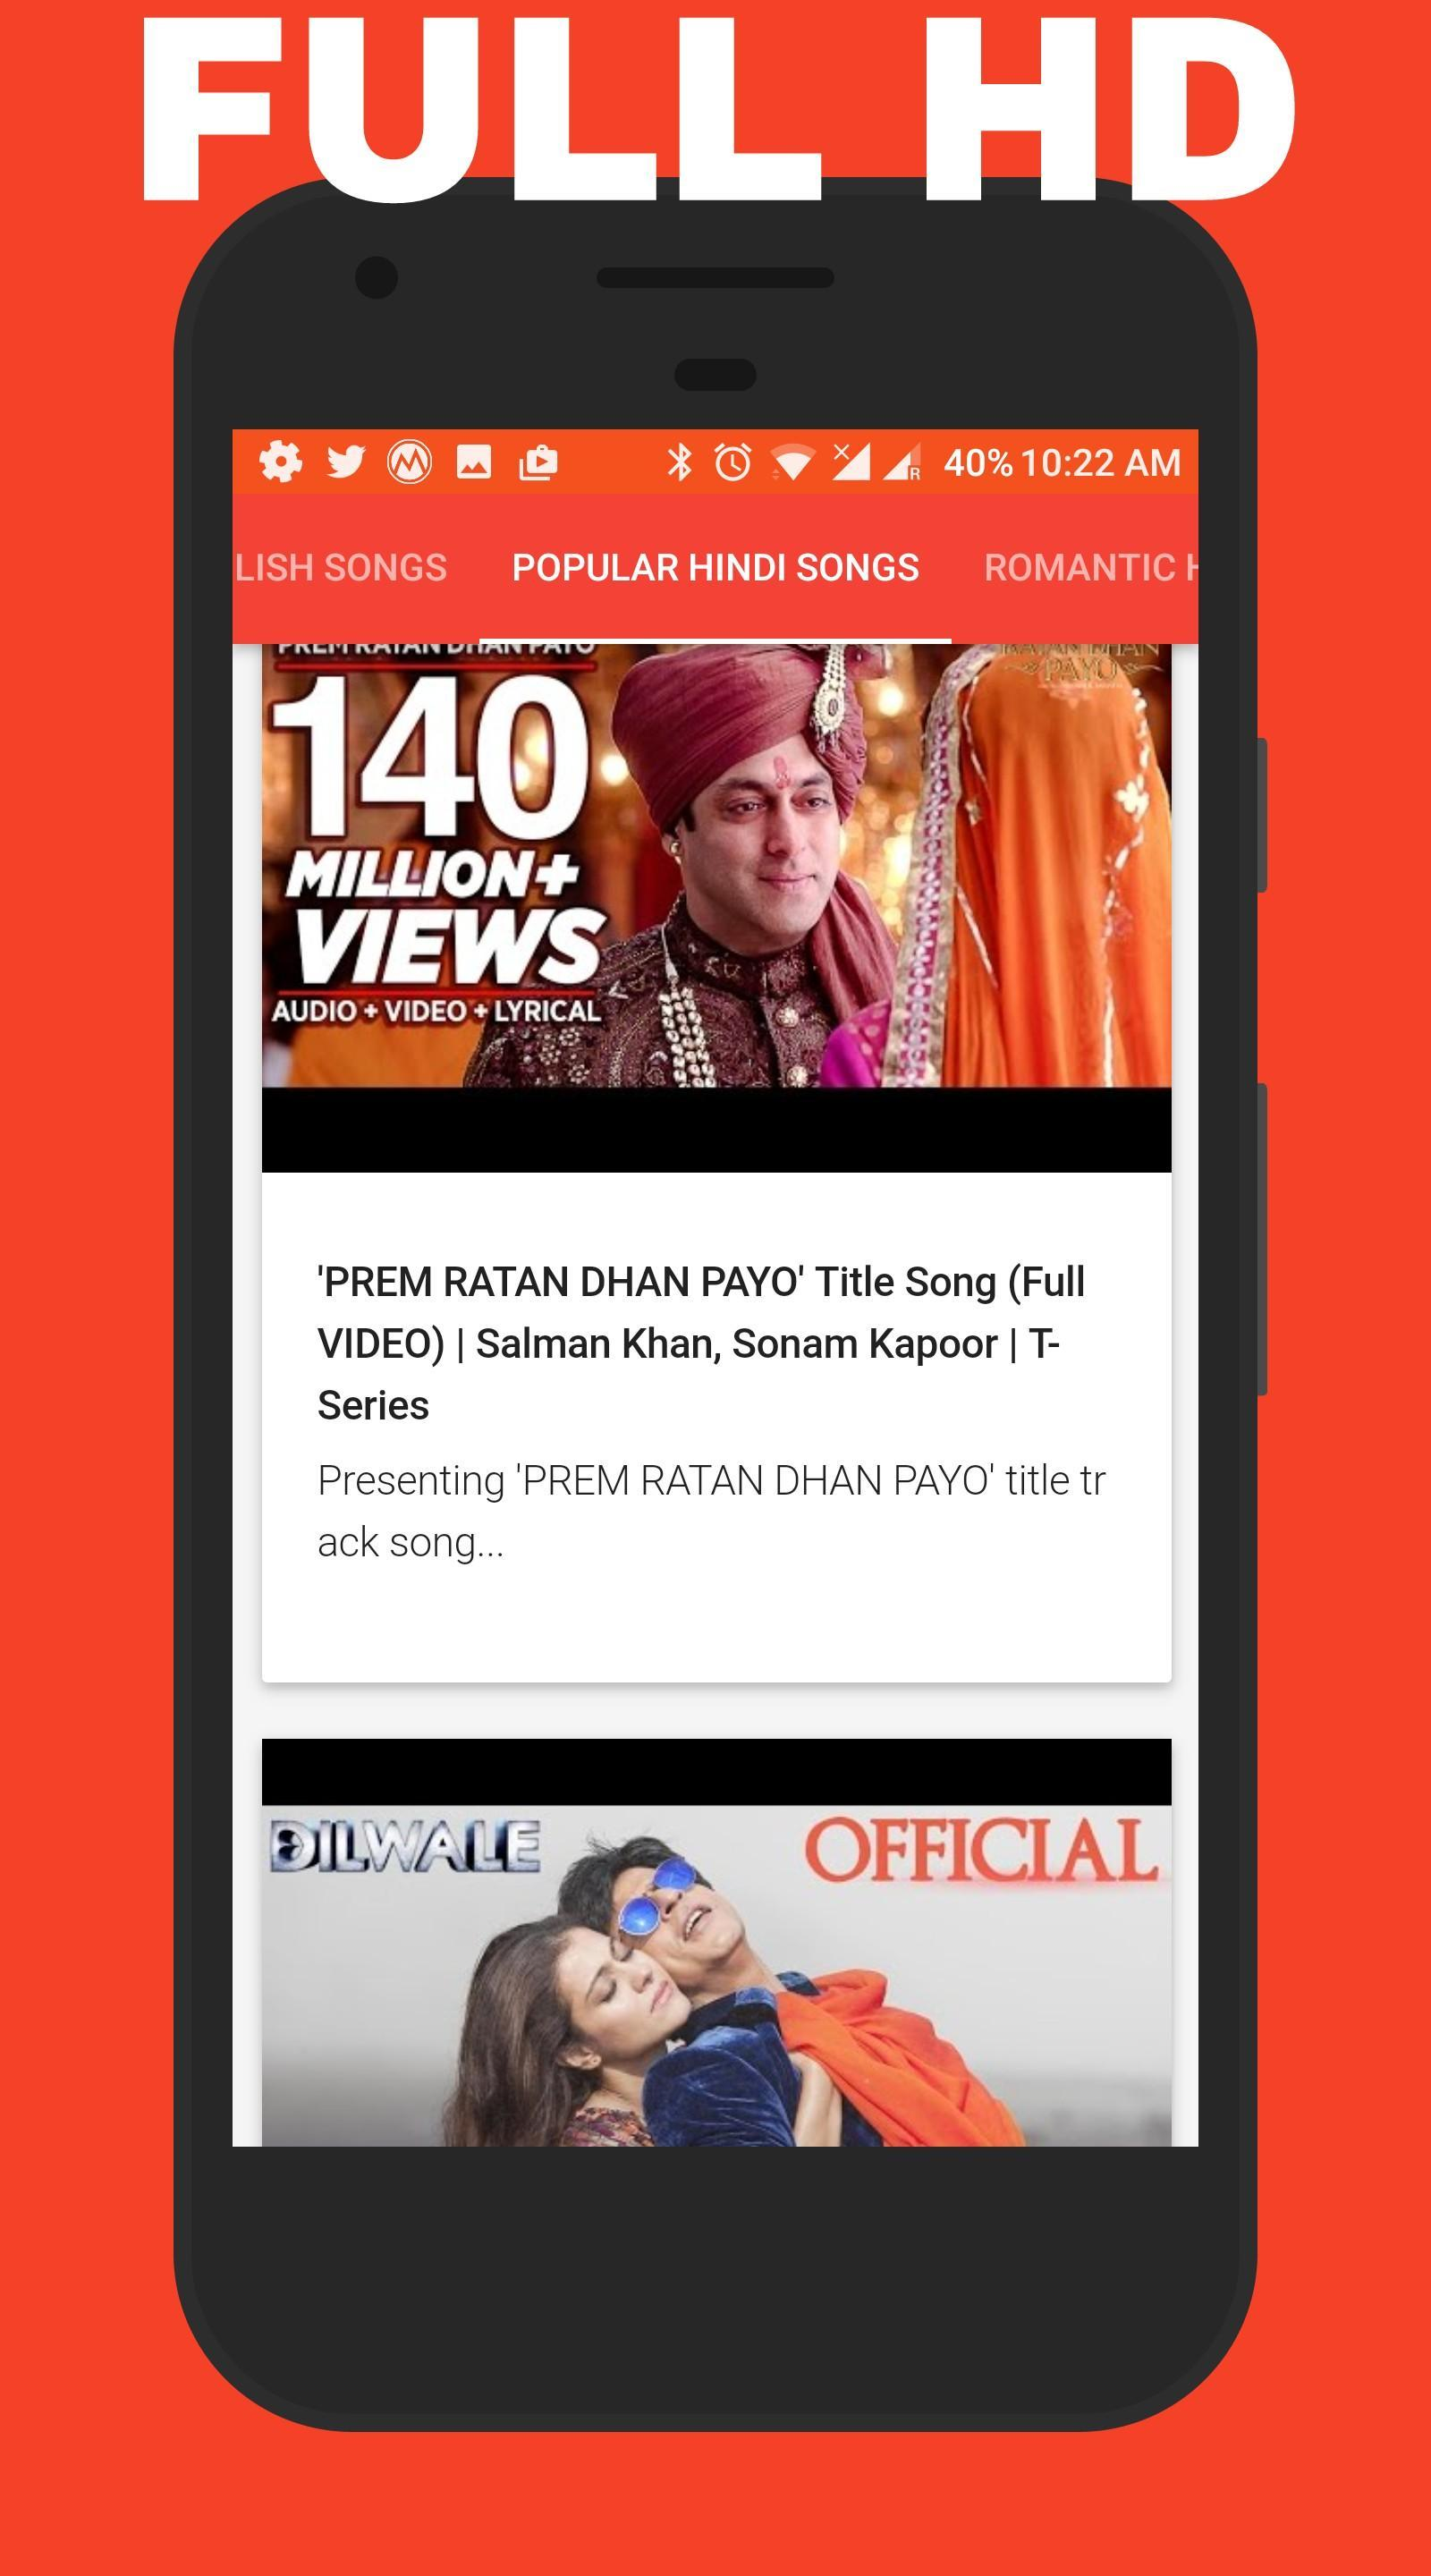 New Hindi HD Video Songs for Android - APK Download